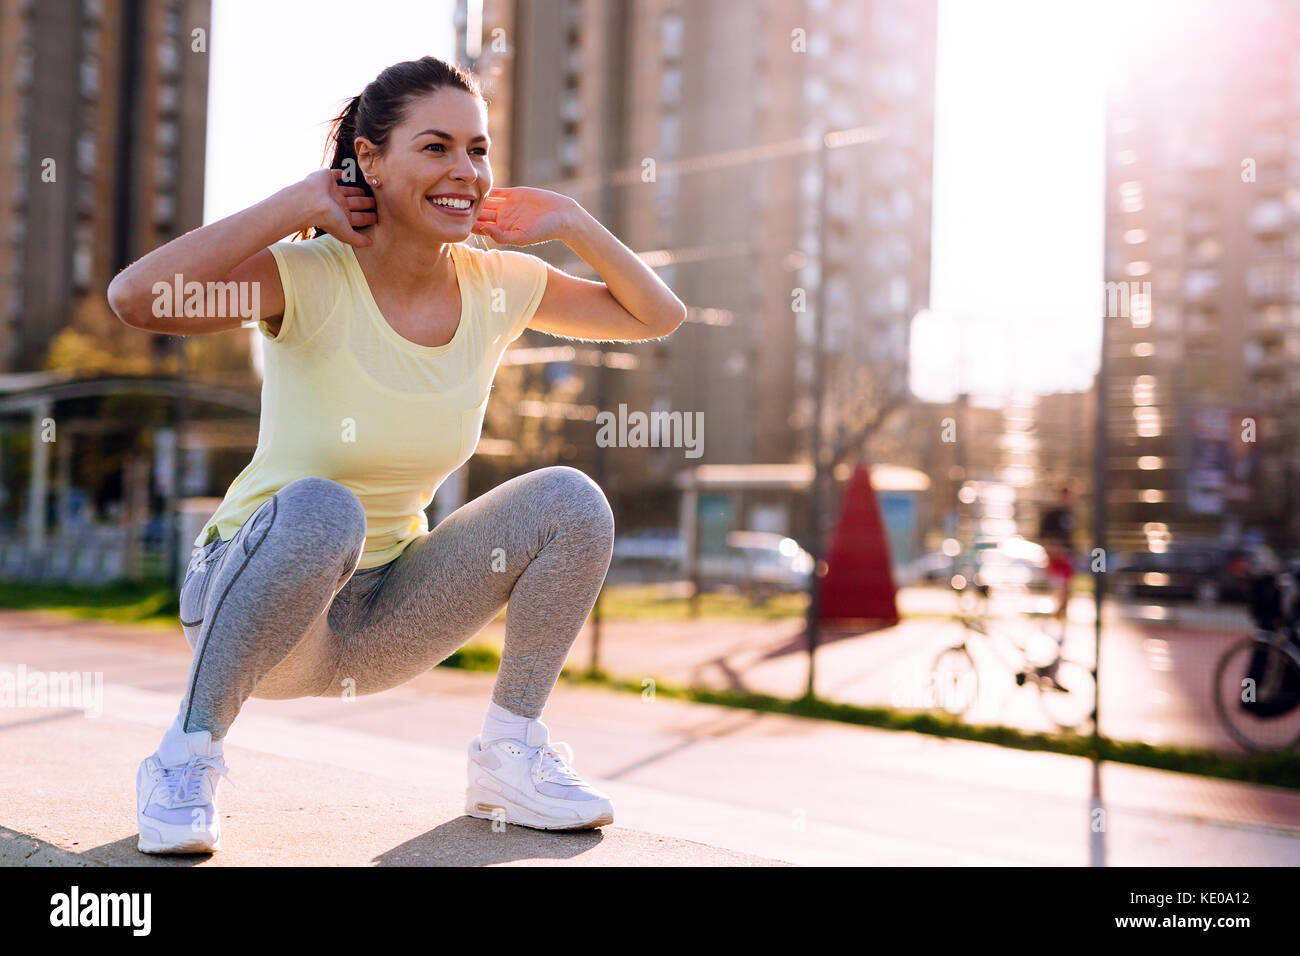 Young woman doing squats in urban area - Stock Image